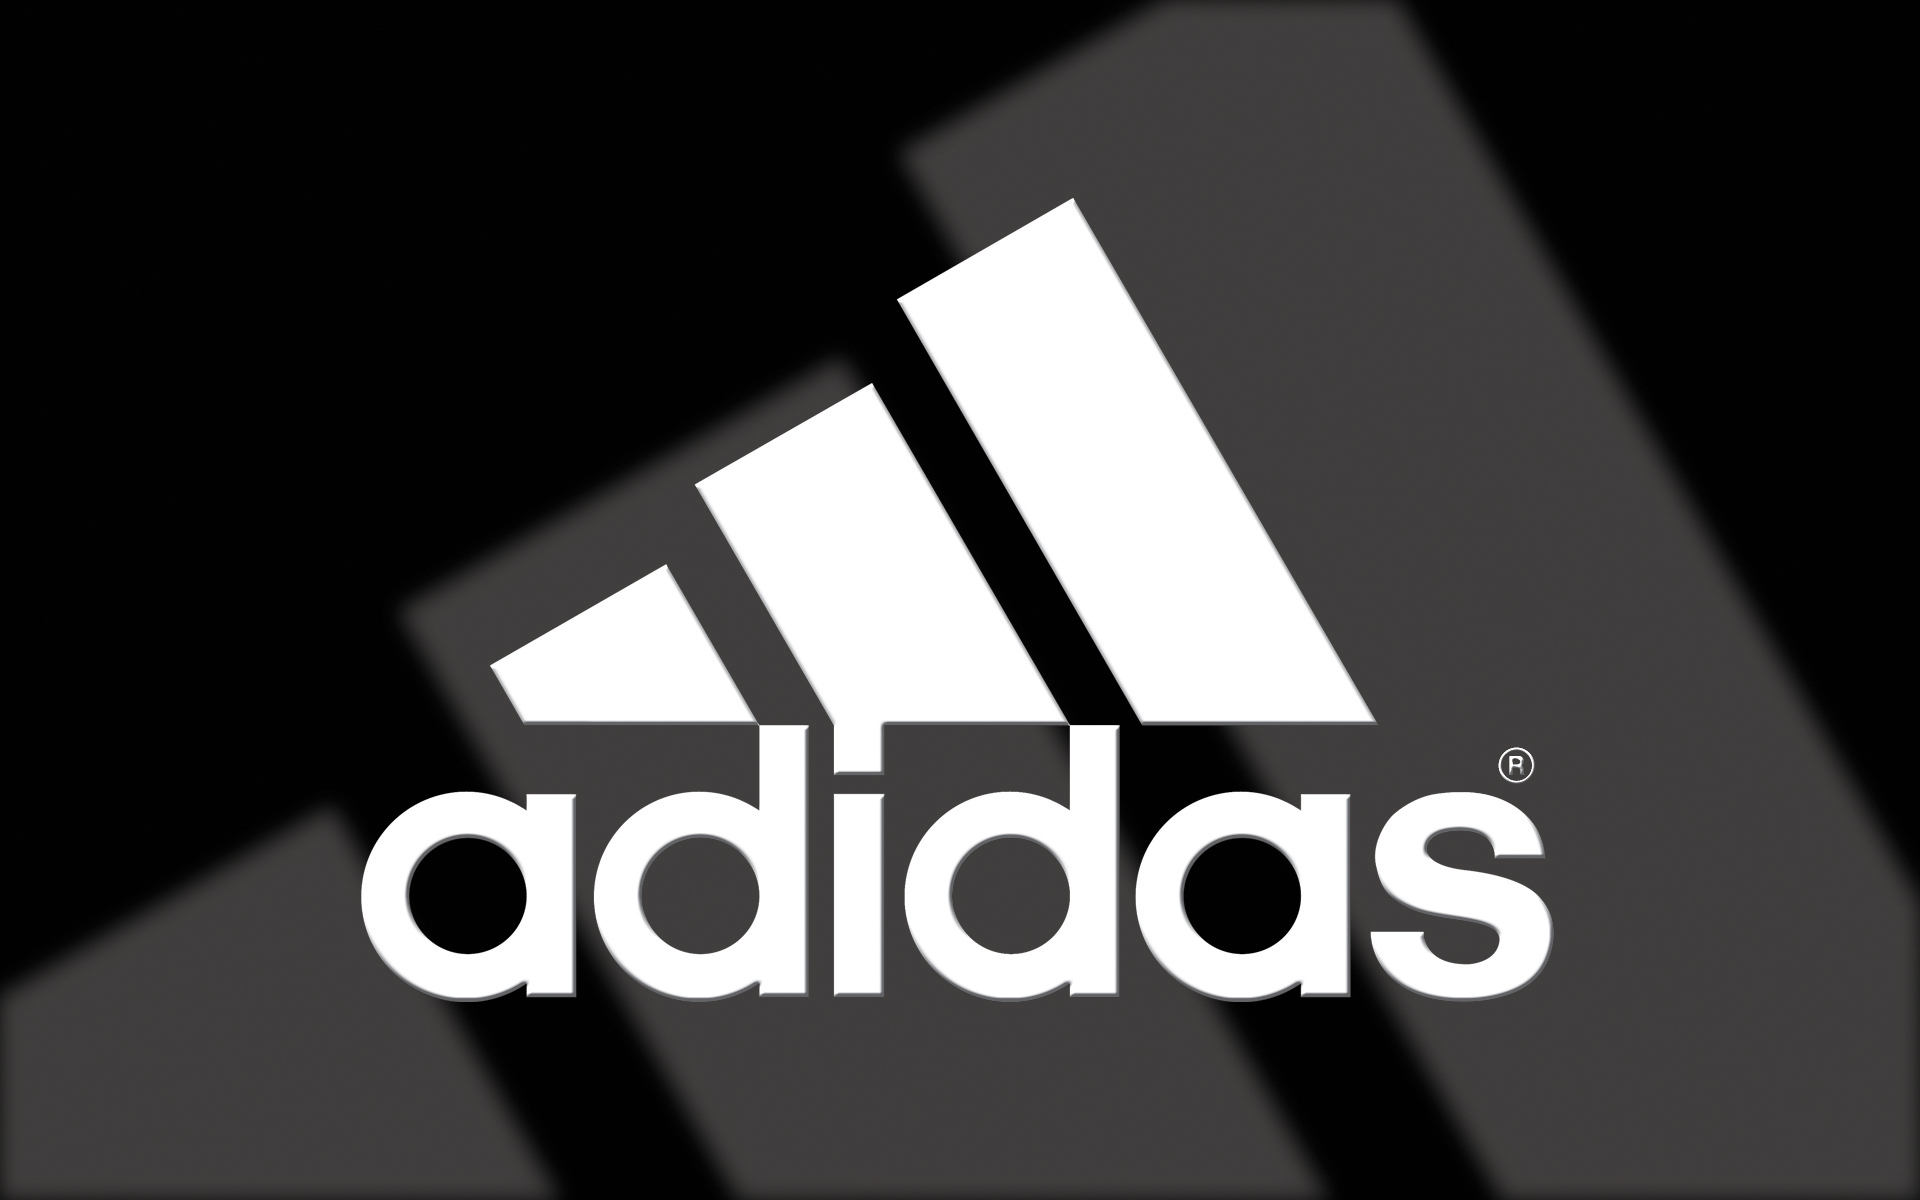 adidas 電腦桌布, 桌面背景 | 1920x1200 | ID:152938: wall.alphacoders.com/big.php?i=152938&lang=Chinese